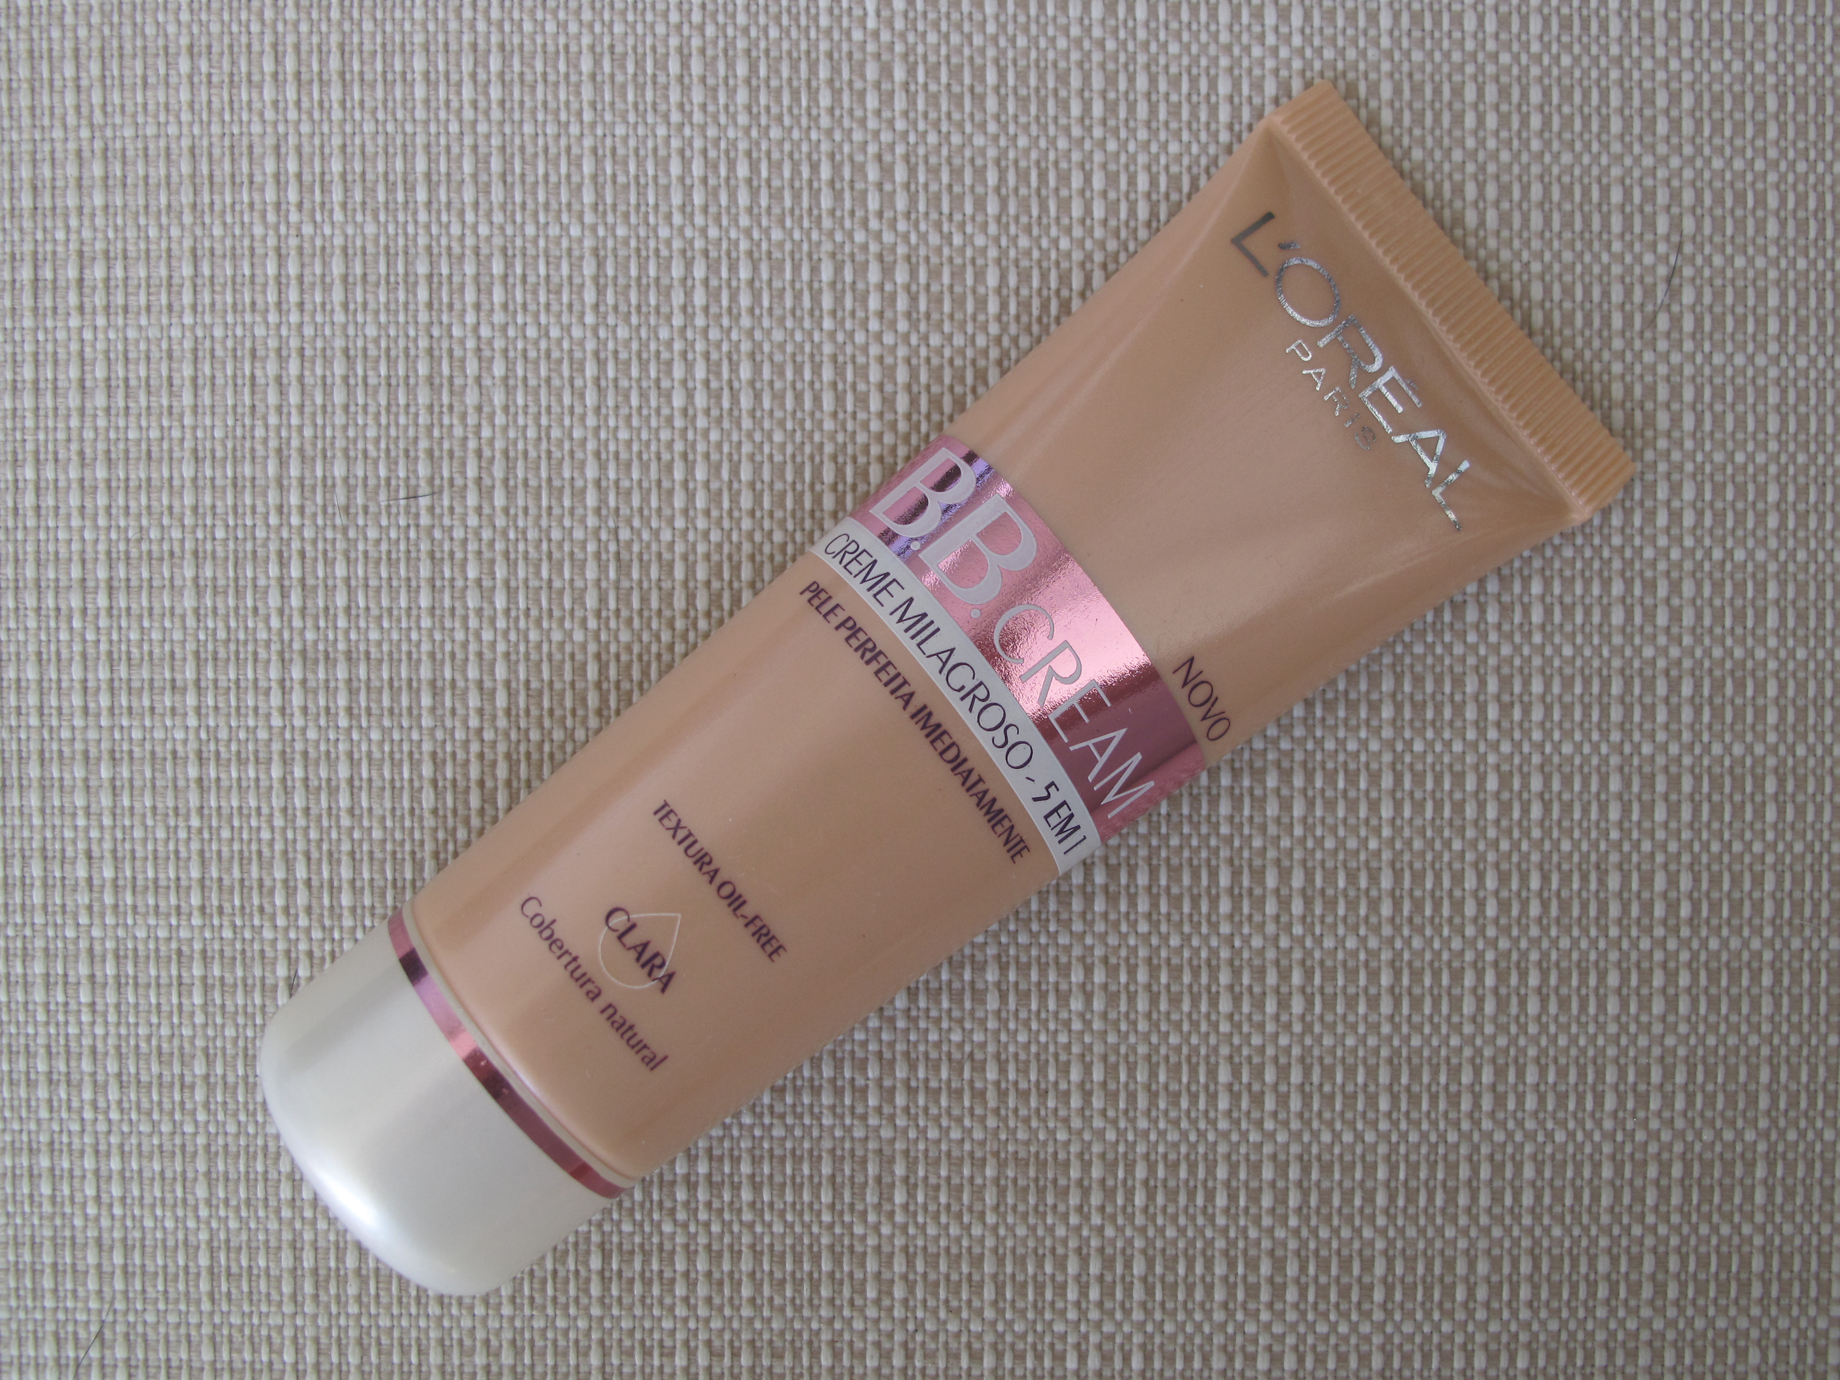 L'oreal BB Cream -Tubo